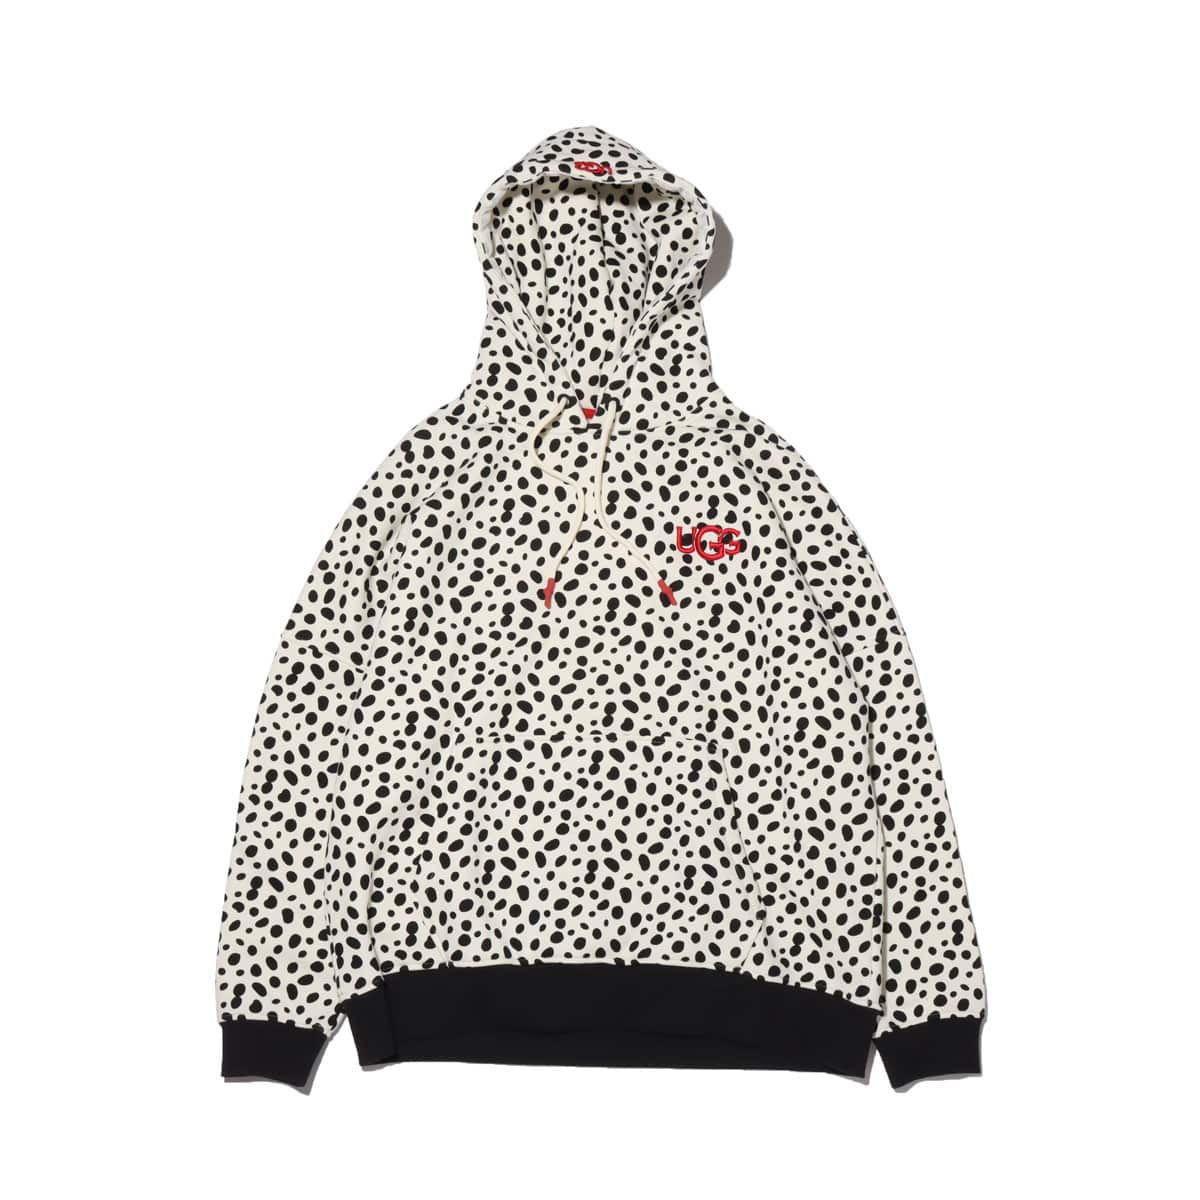 UGG CA805 Dalmatian Hoodie OFF WHITE/BLACK 20FW-S_photo_large